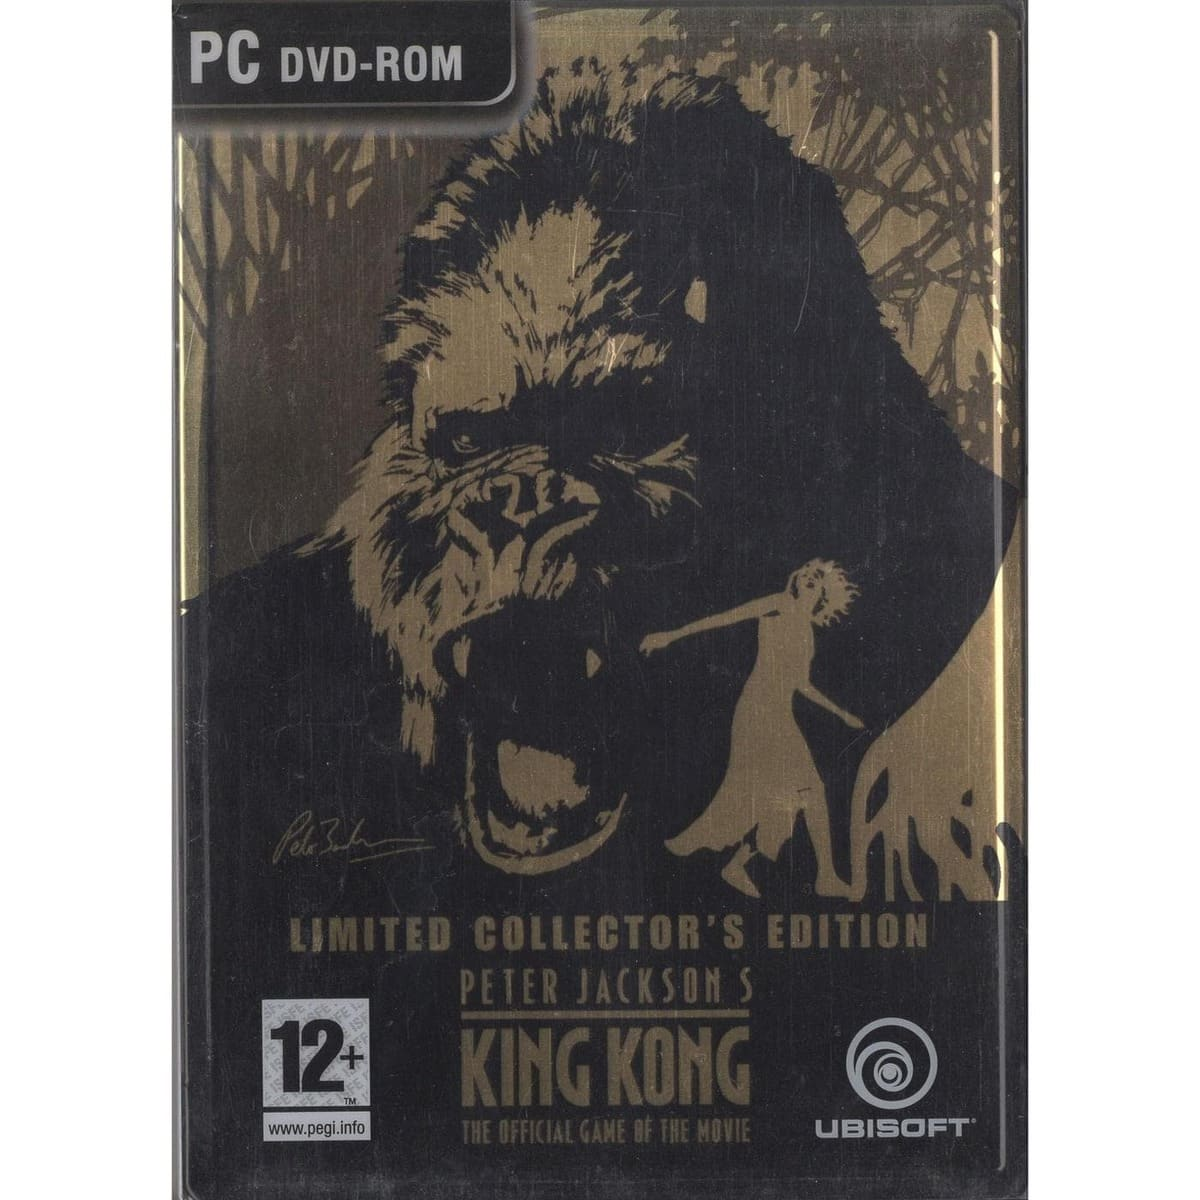 Peter Jackson's King Kong: The Official Game of the Movie (Limited Collector's Edition - PC)